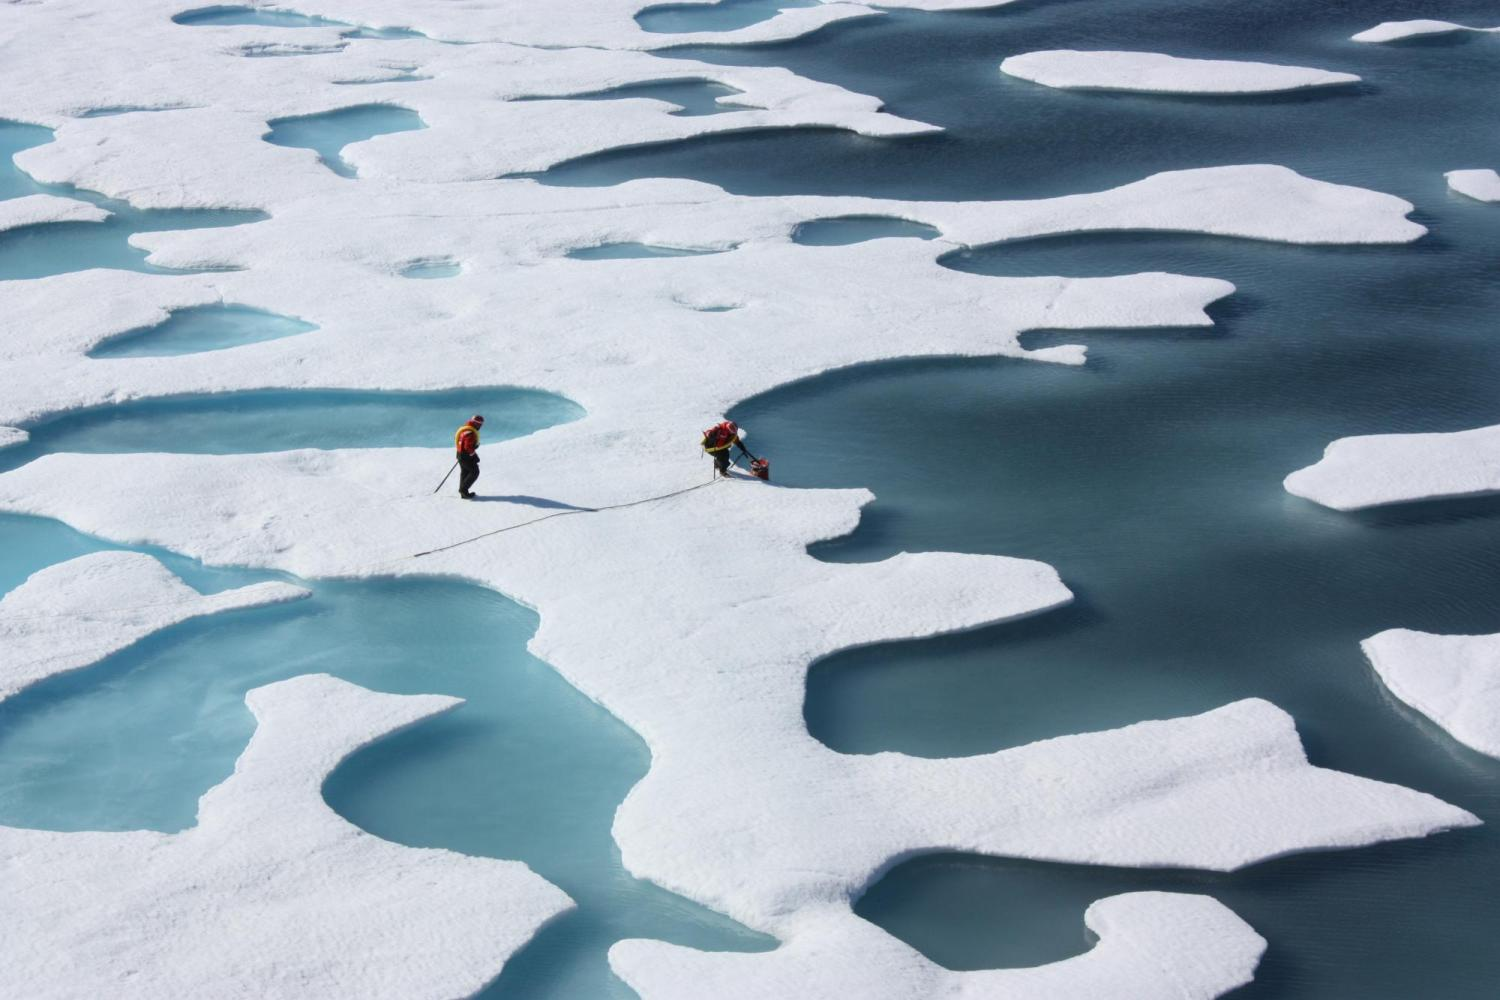 Photograph of two researchers on the ice